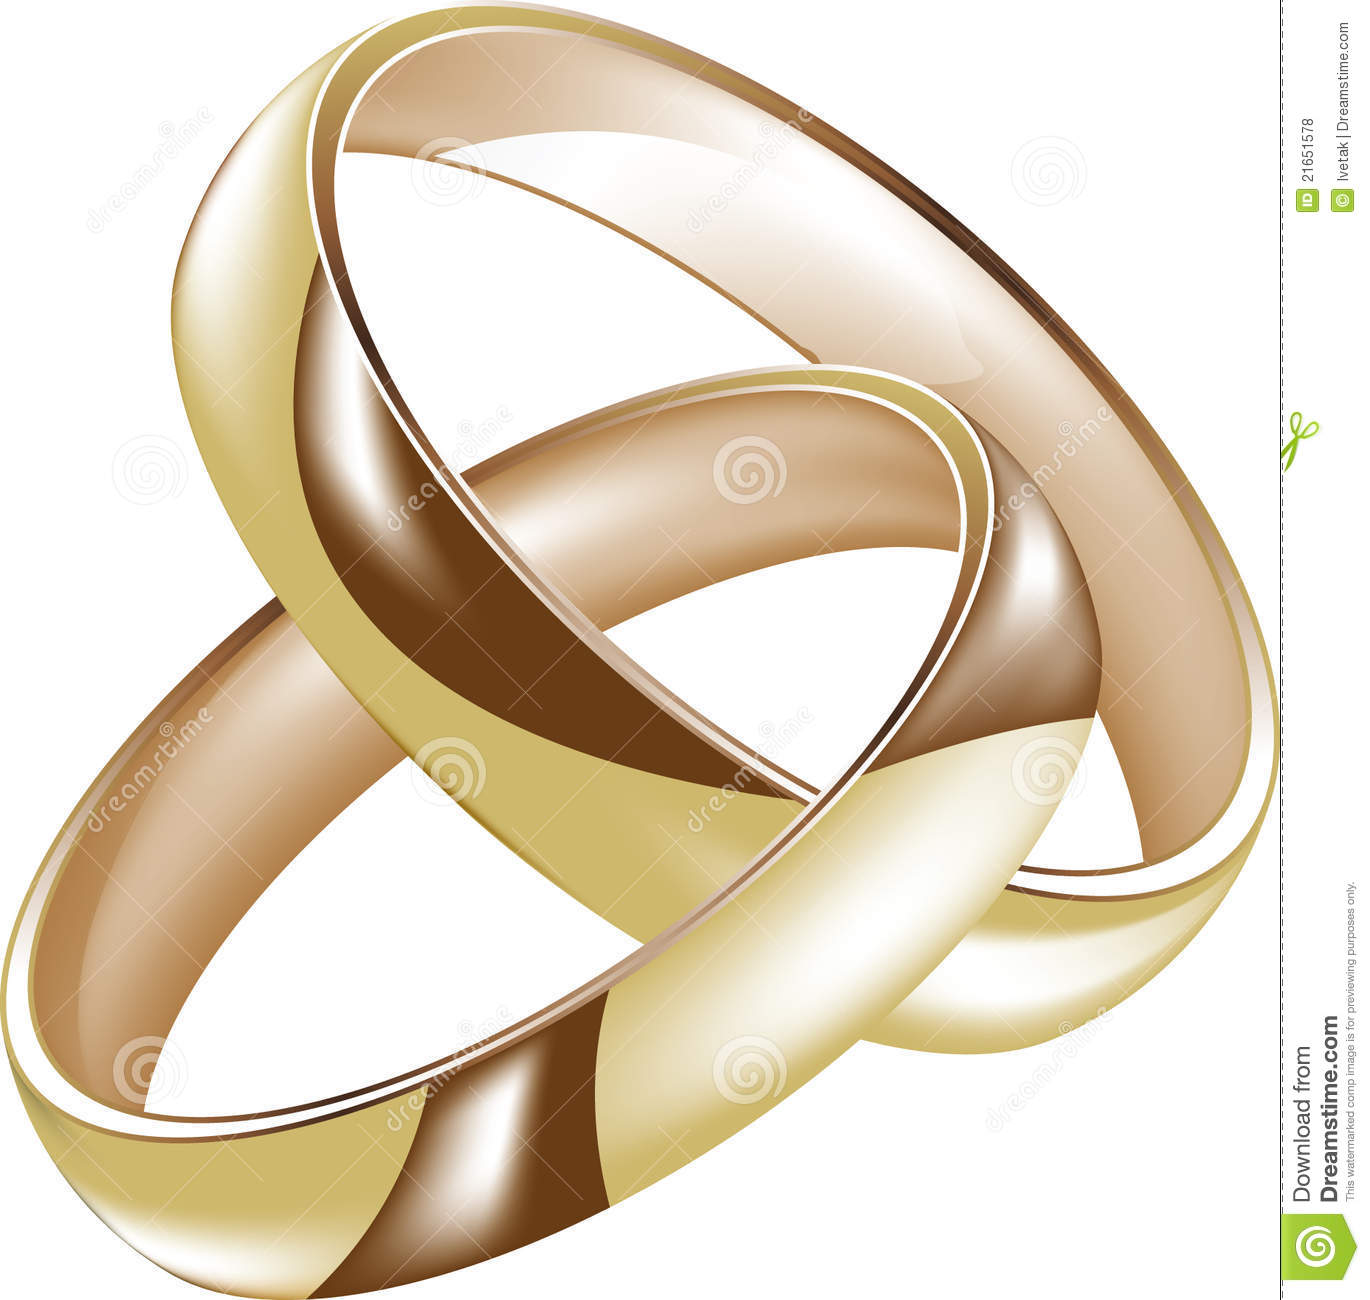 Brilliant Free Photos of Wedding Rings Intertwined 1370 x 1300 · 128 kB · jpeg